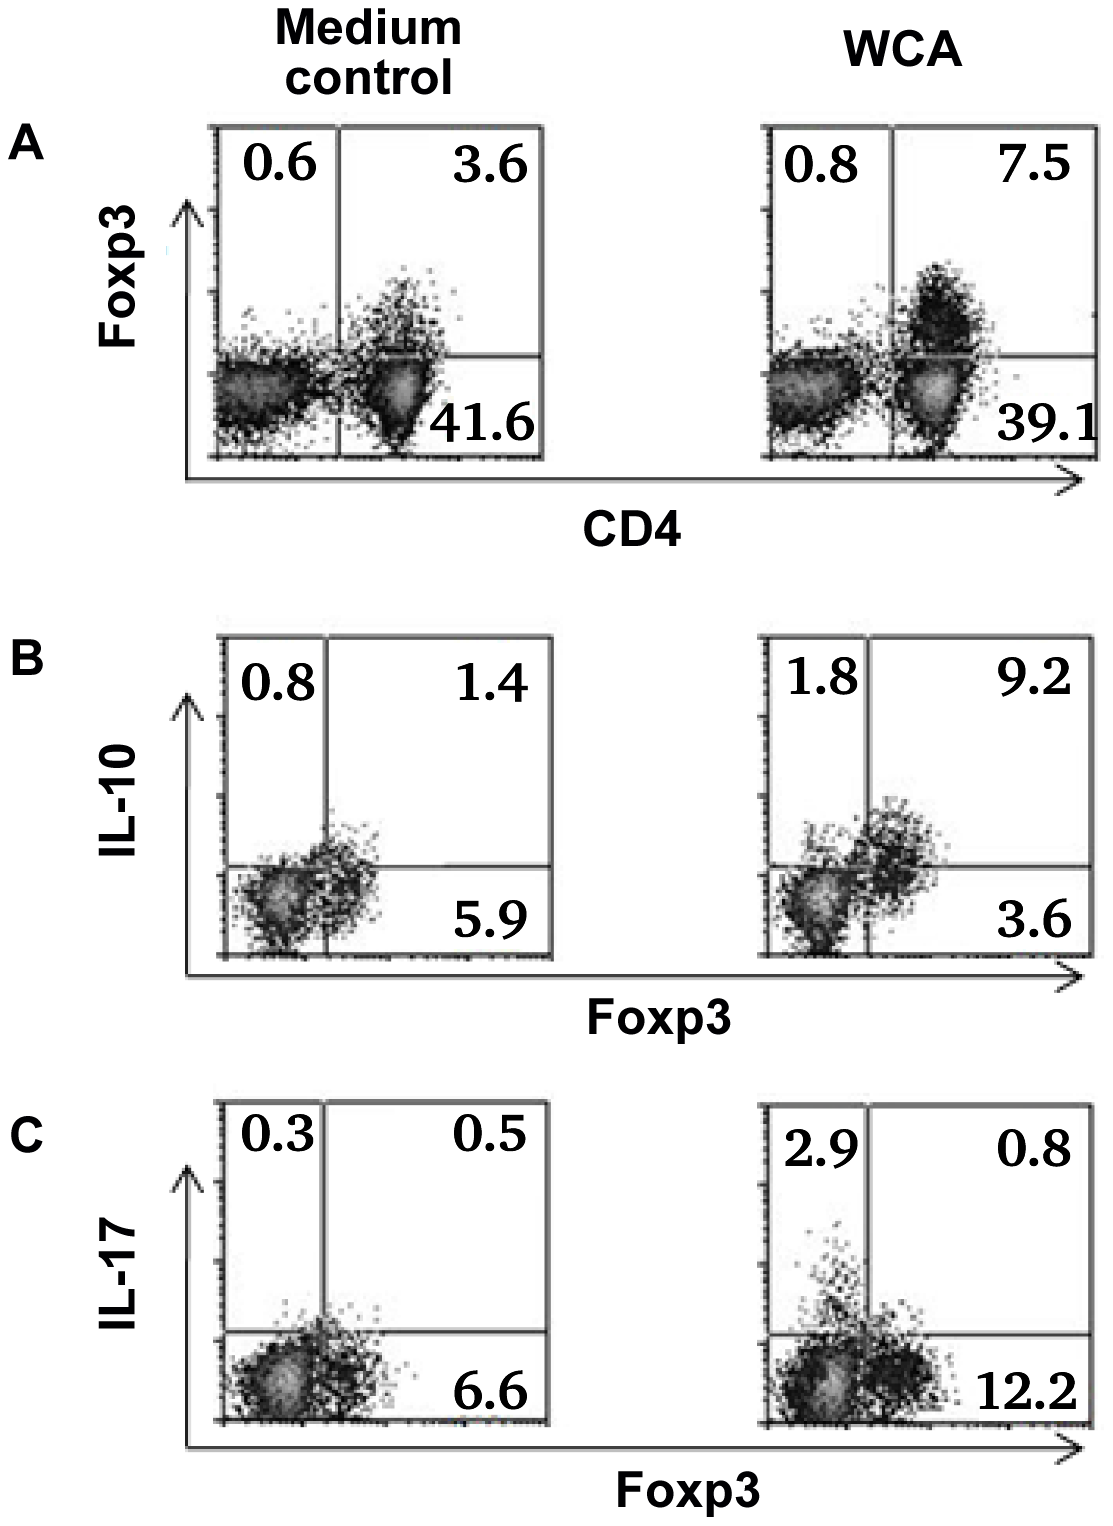 Cytokine expression by Foxp3+ Treg in adenoidal cells.